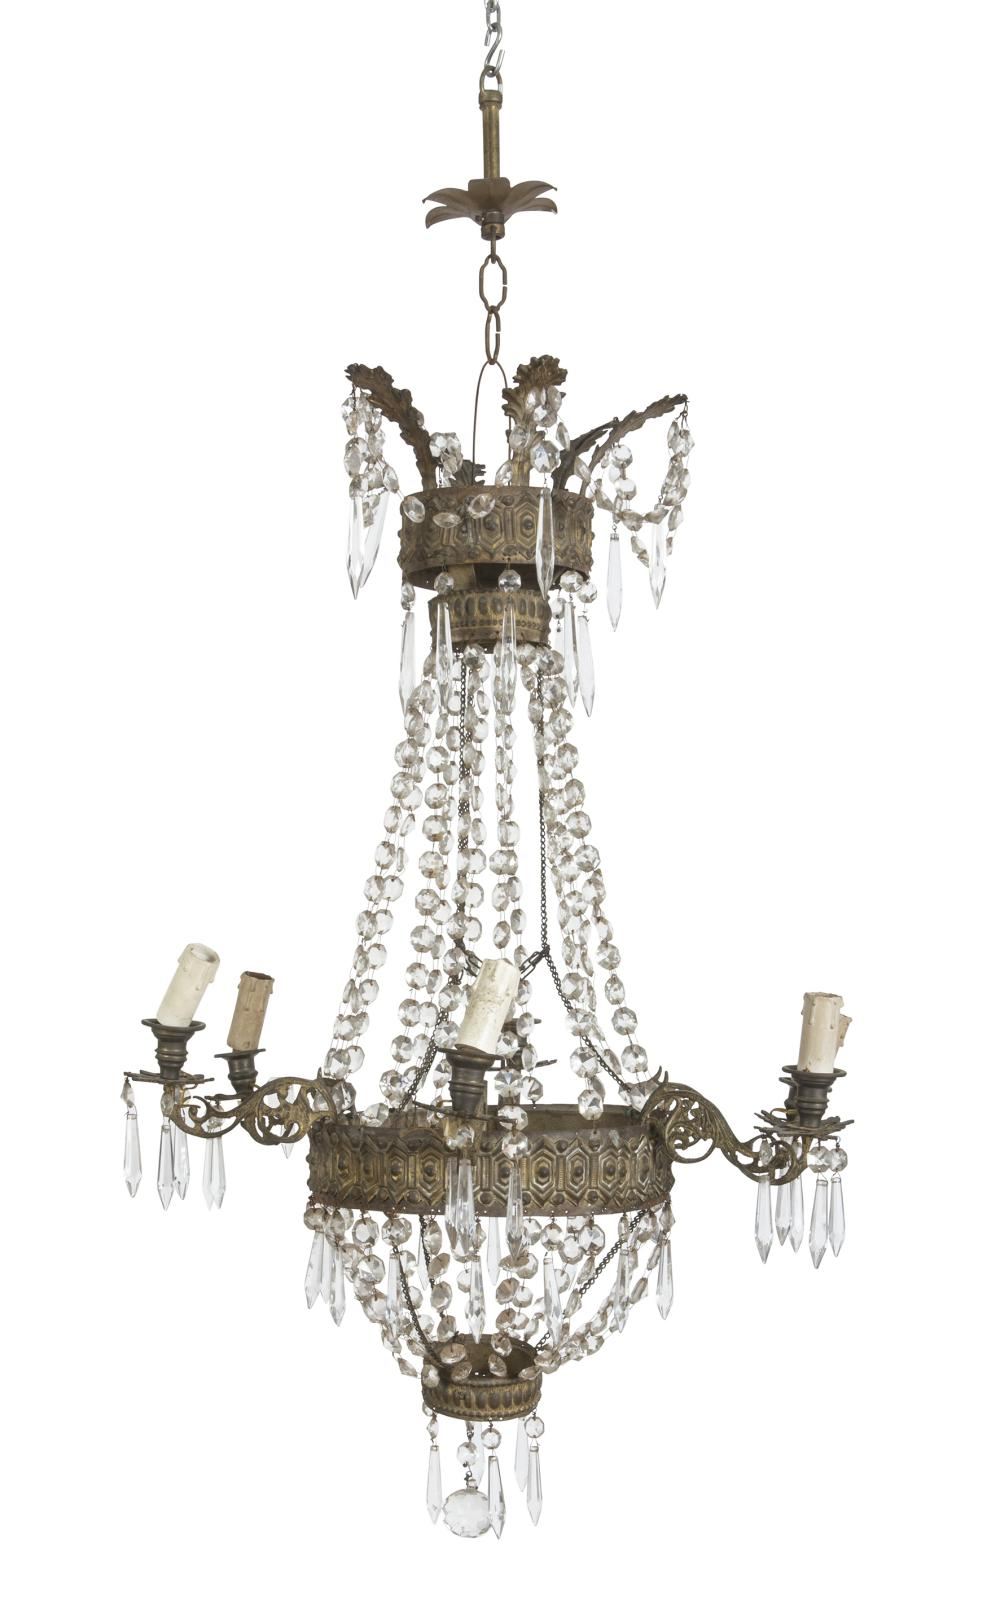 Lot 387: BELL CHANDELIER, EMPIRE PERIOD